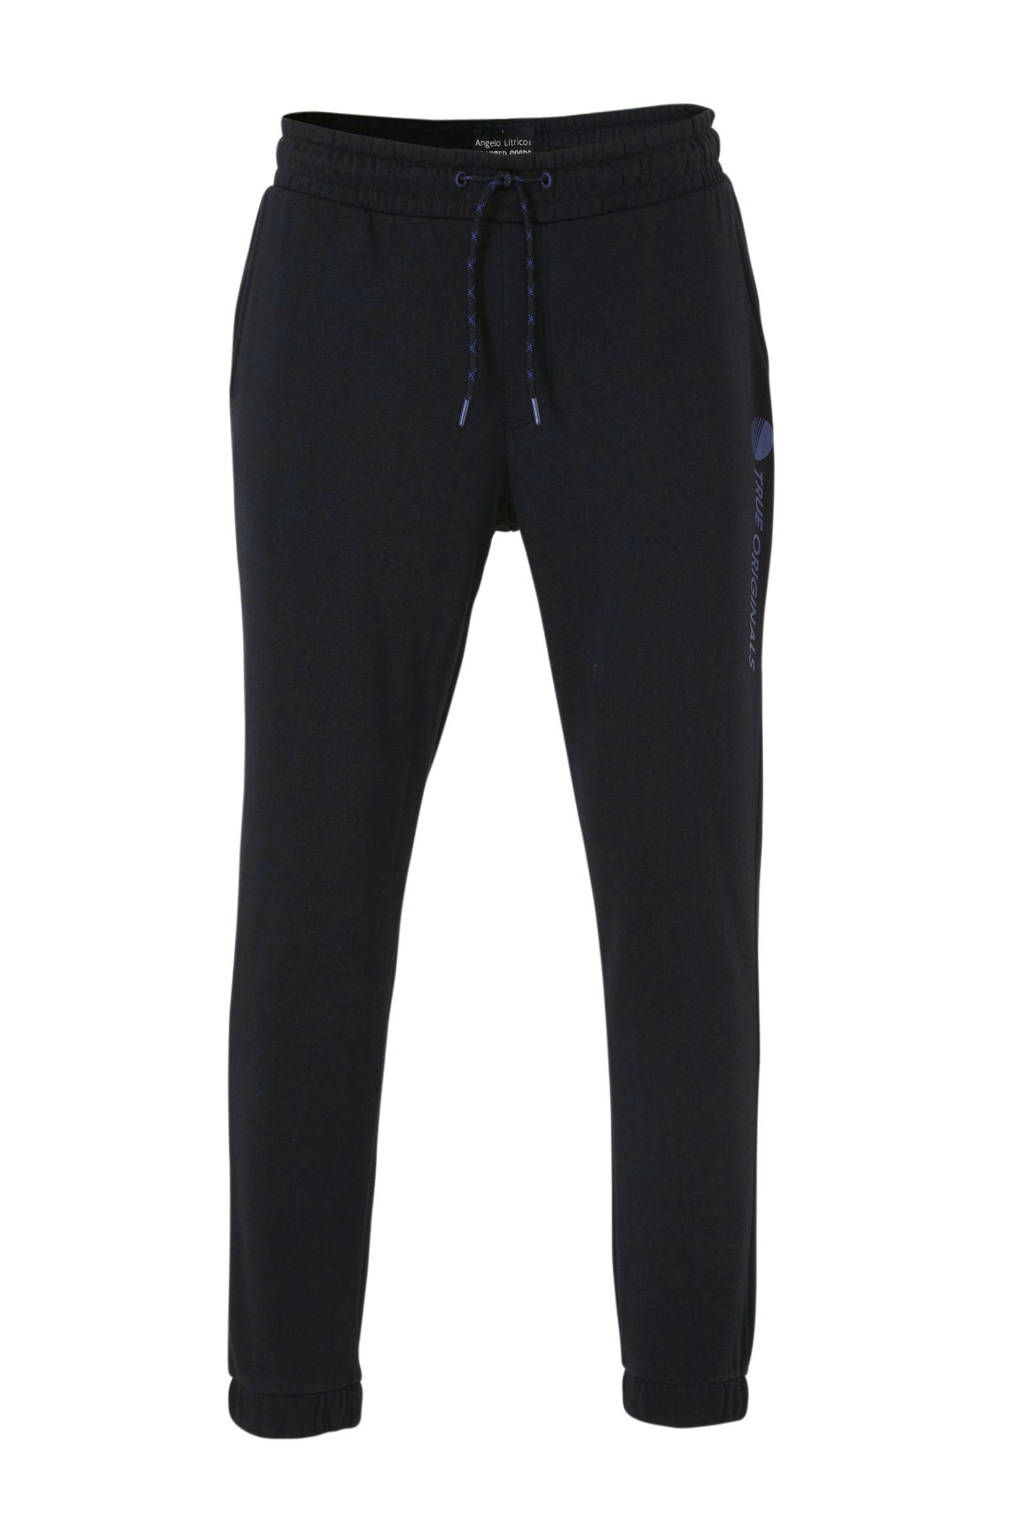 C&A regular fit joggingbroek donkerblauw, Donkerblauw